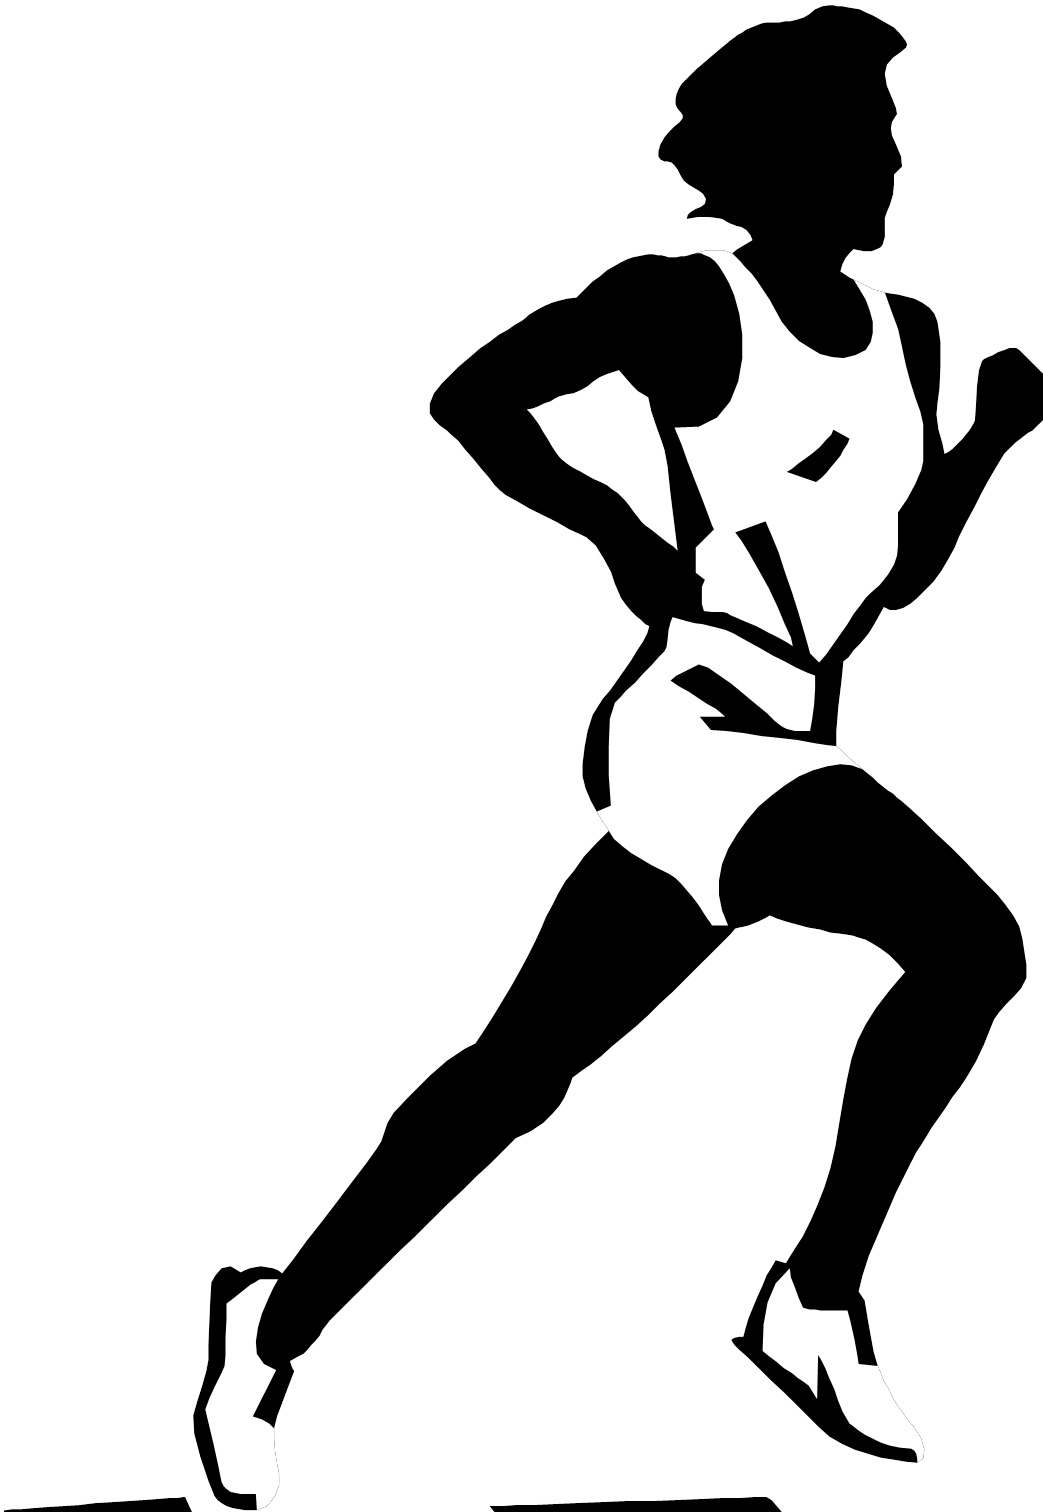 vector black and white Images for running black. Cross country arrow clipart.